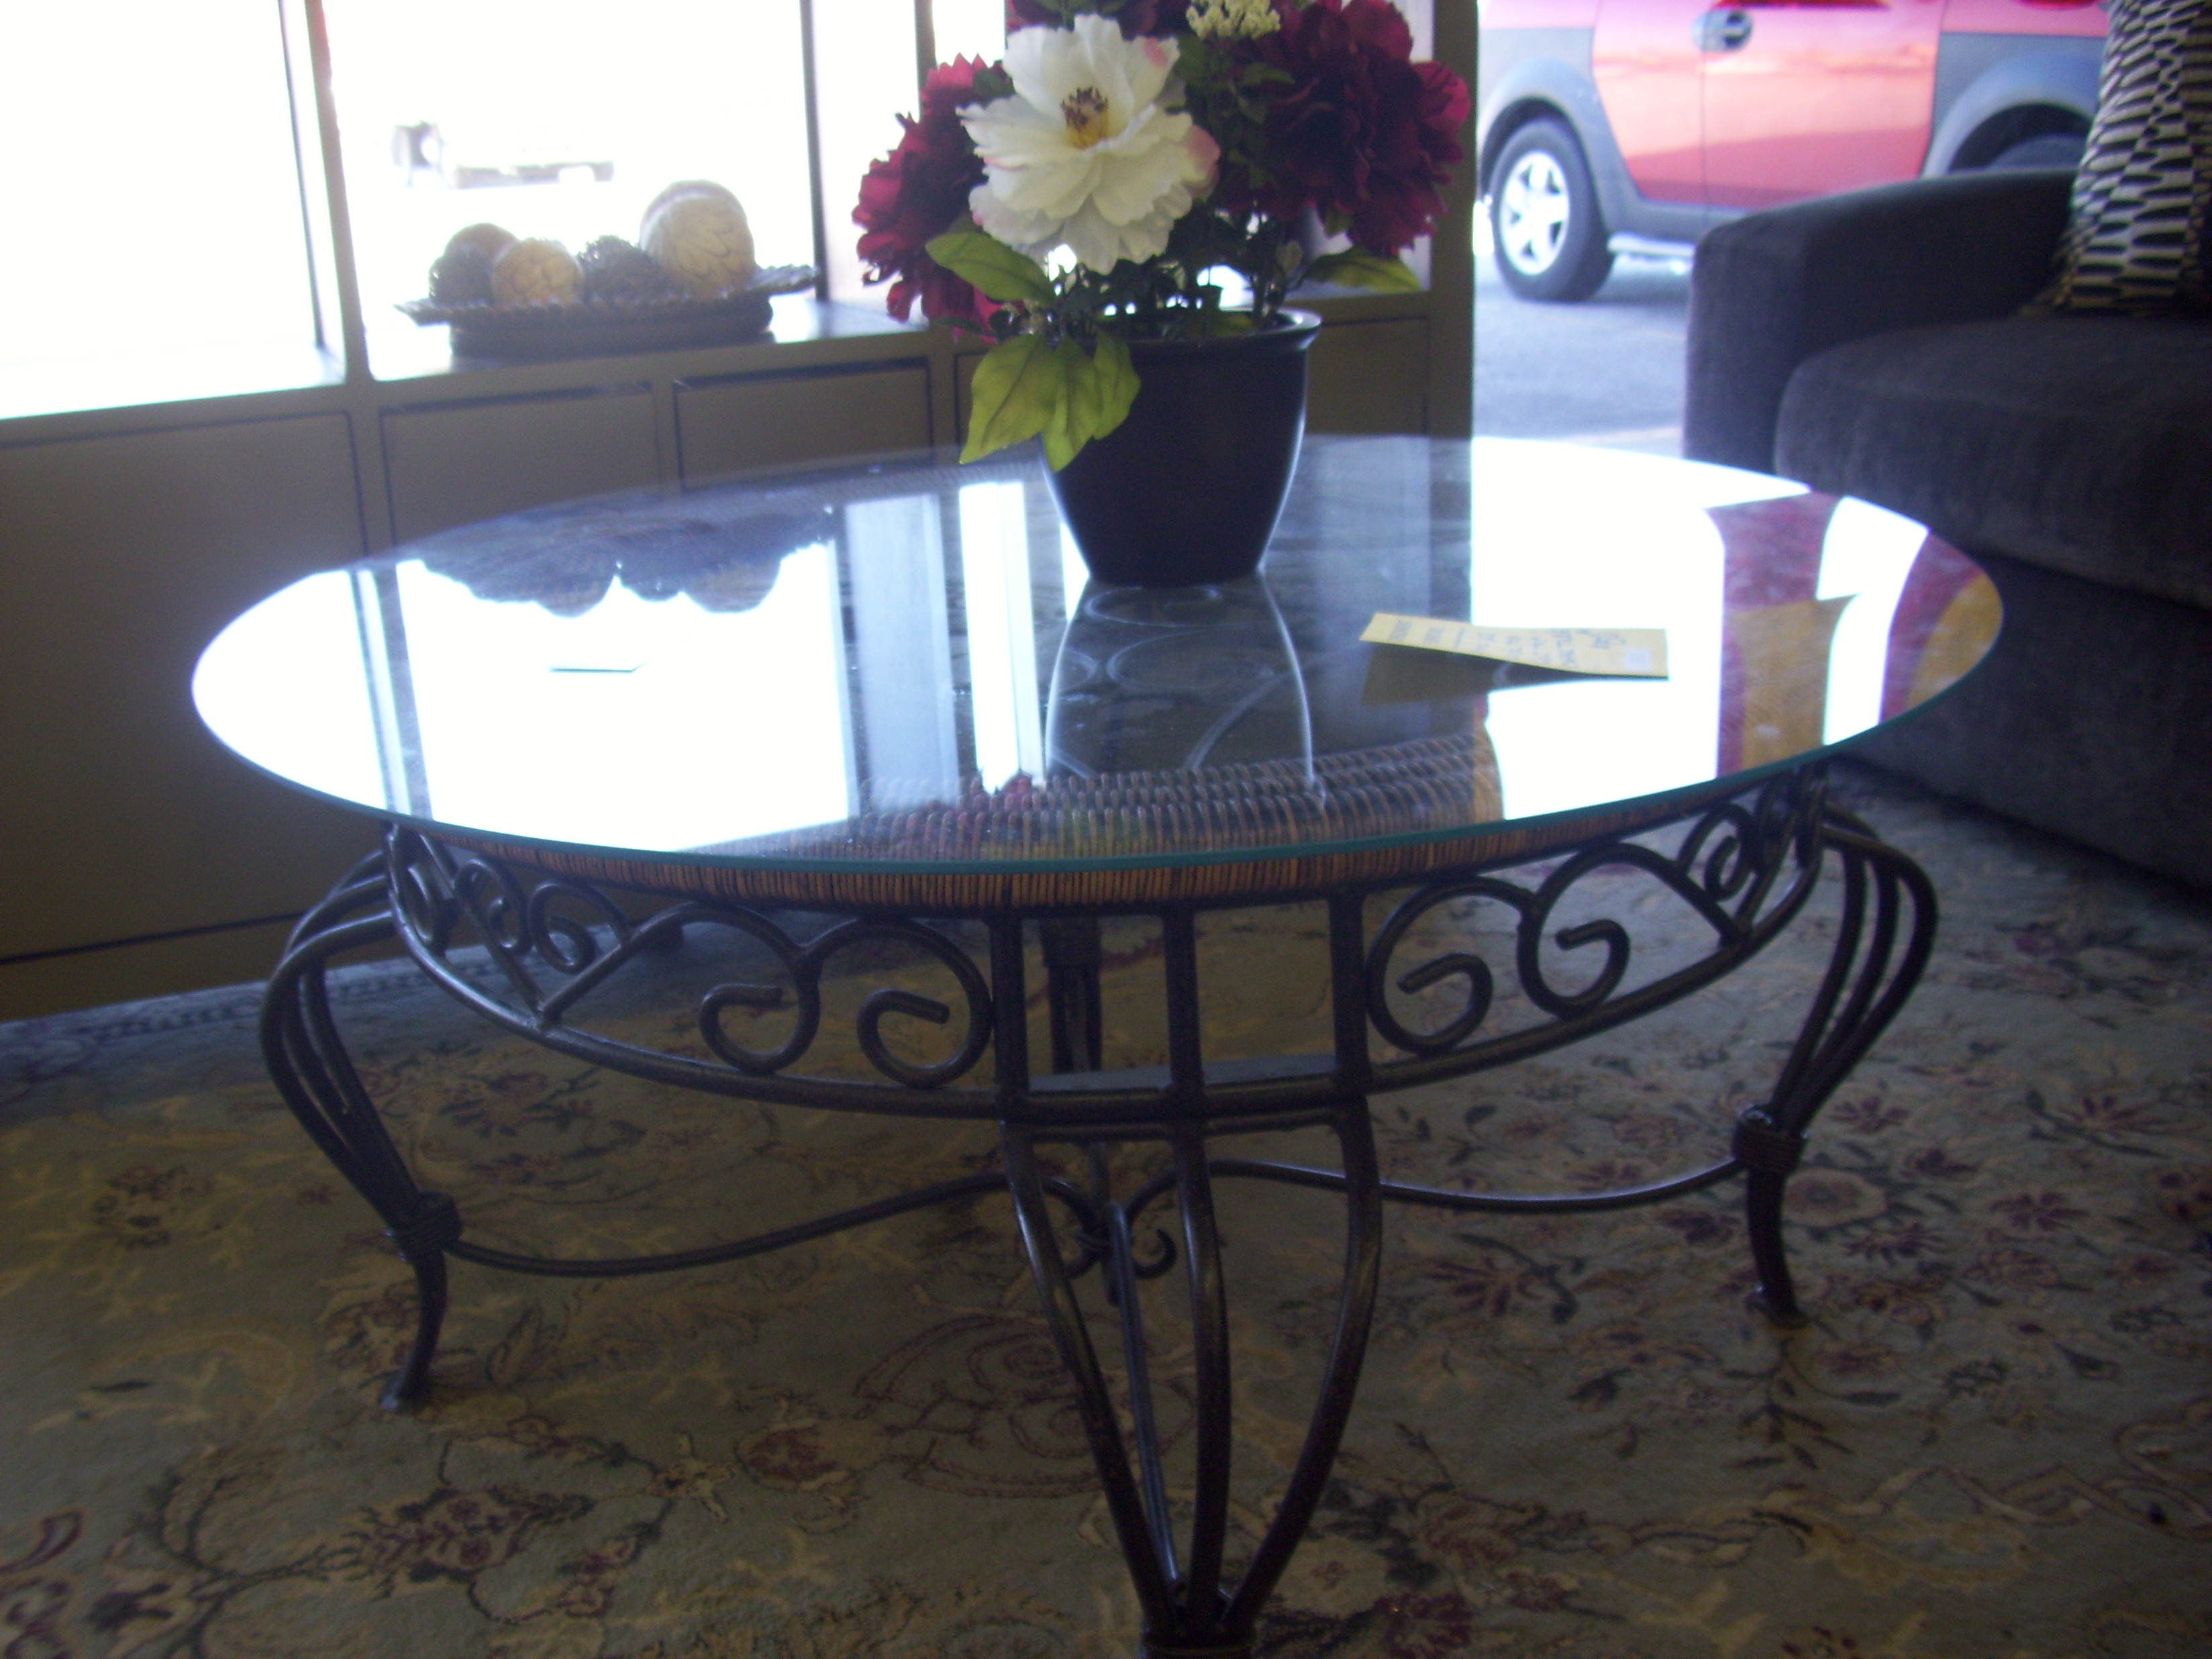 10 s Small and Round Coffee Tables for Sale